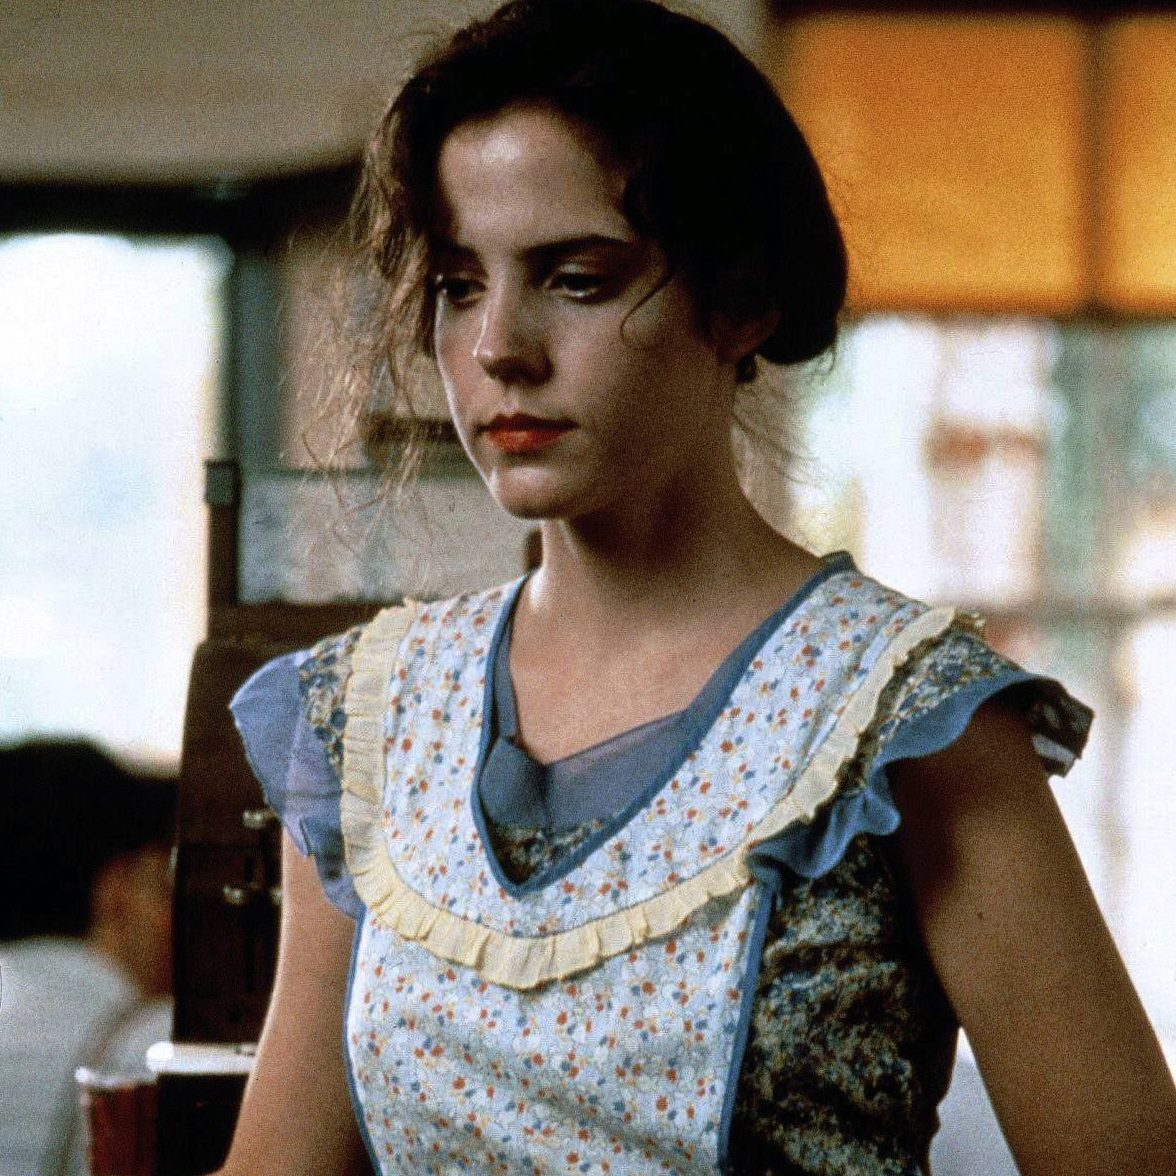 5906e99f88553767fd29379be3d3704a e1598524822462 20 Things You Might Not Have Realised About The 1991 Film Fried Green Tomatoes